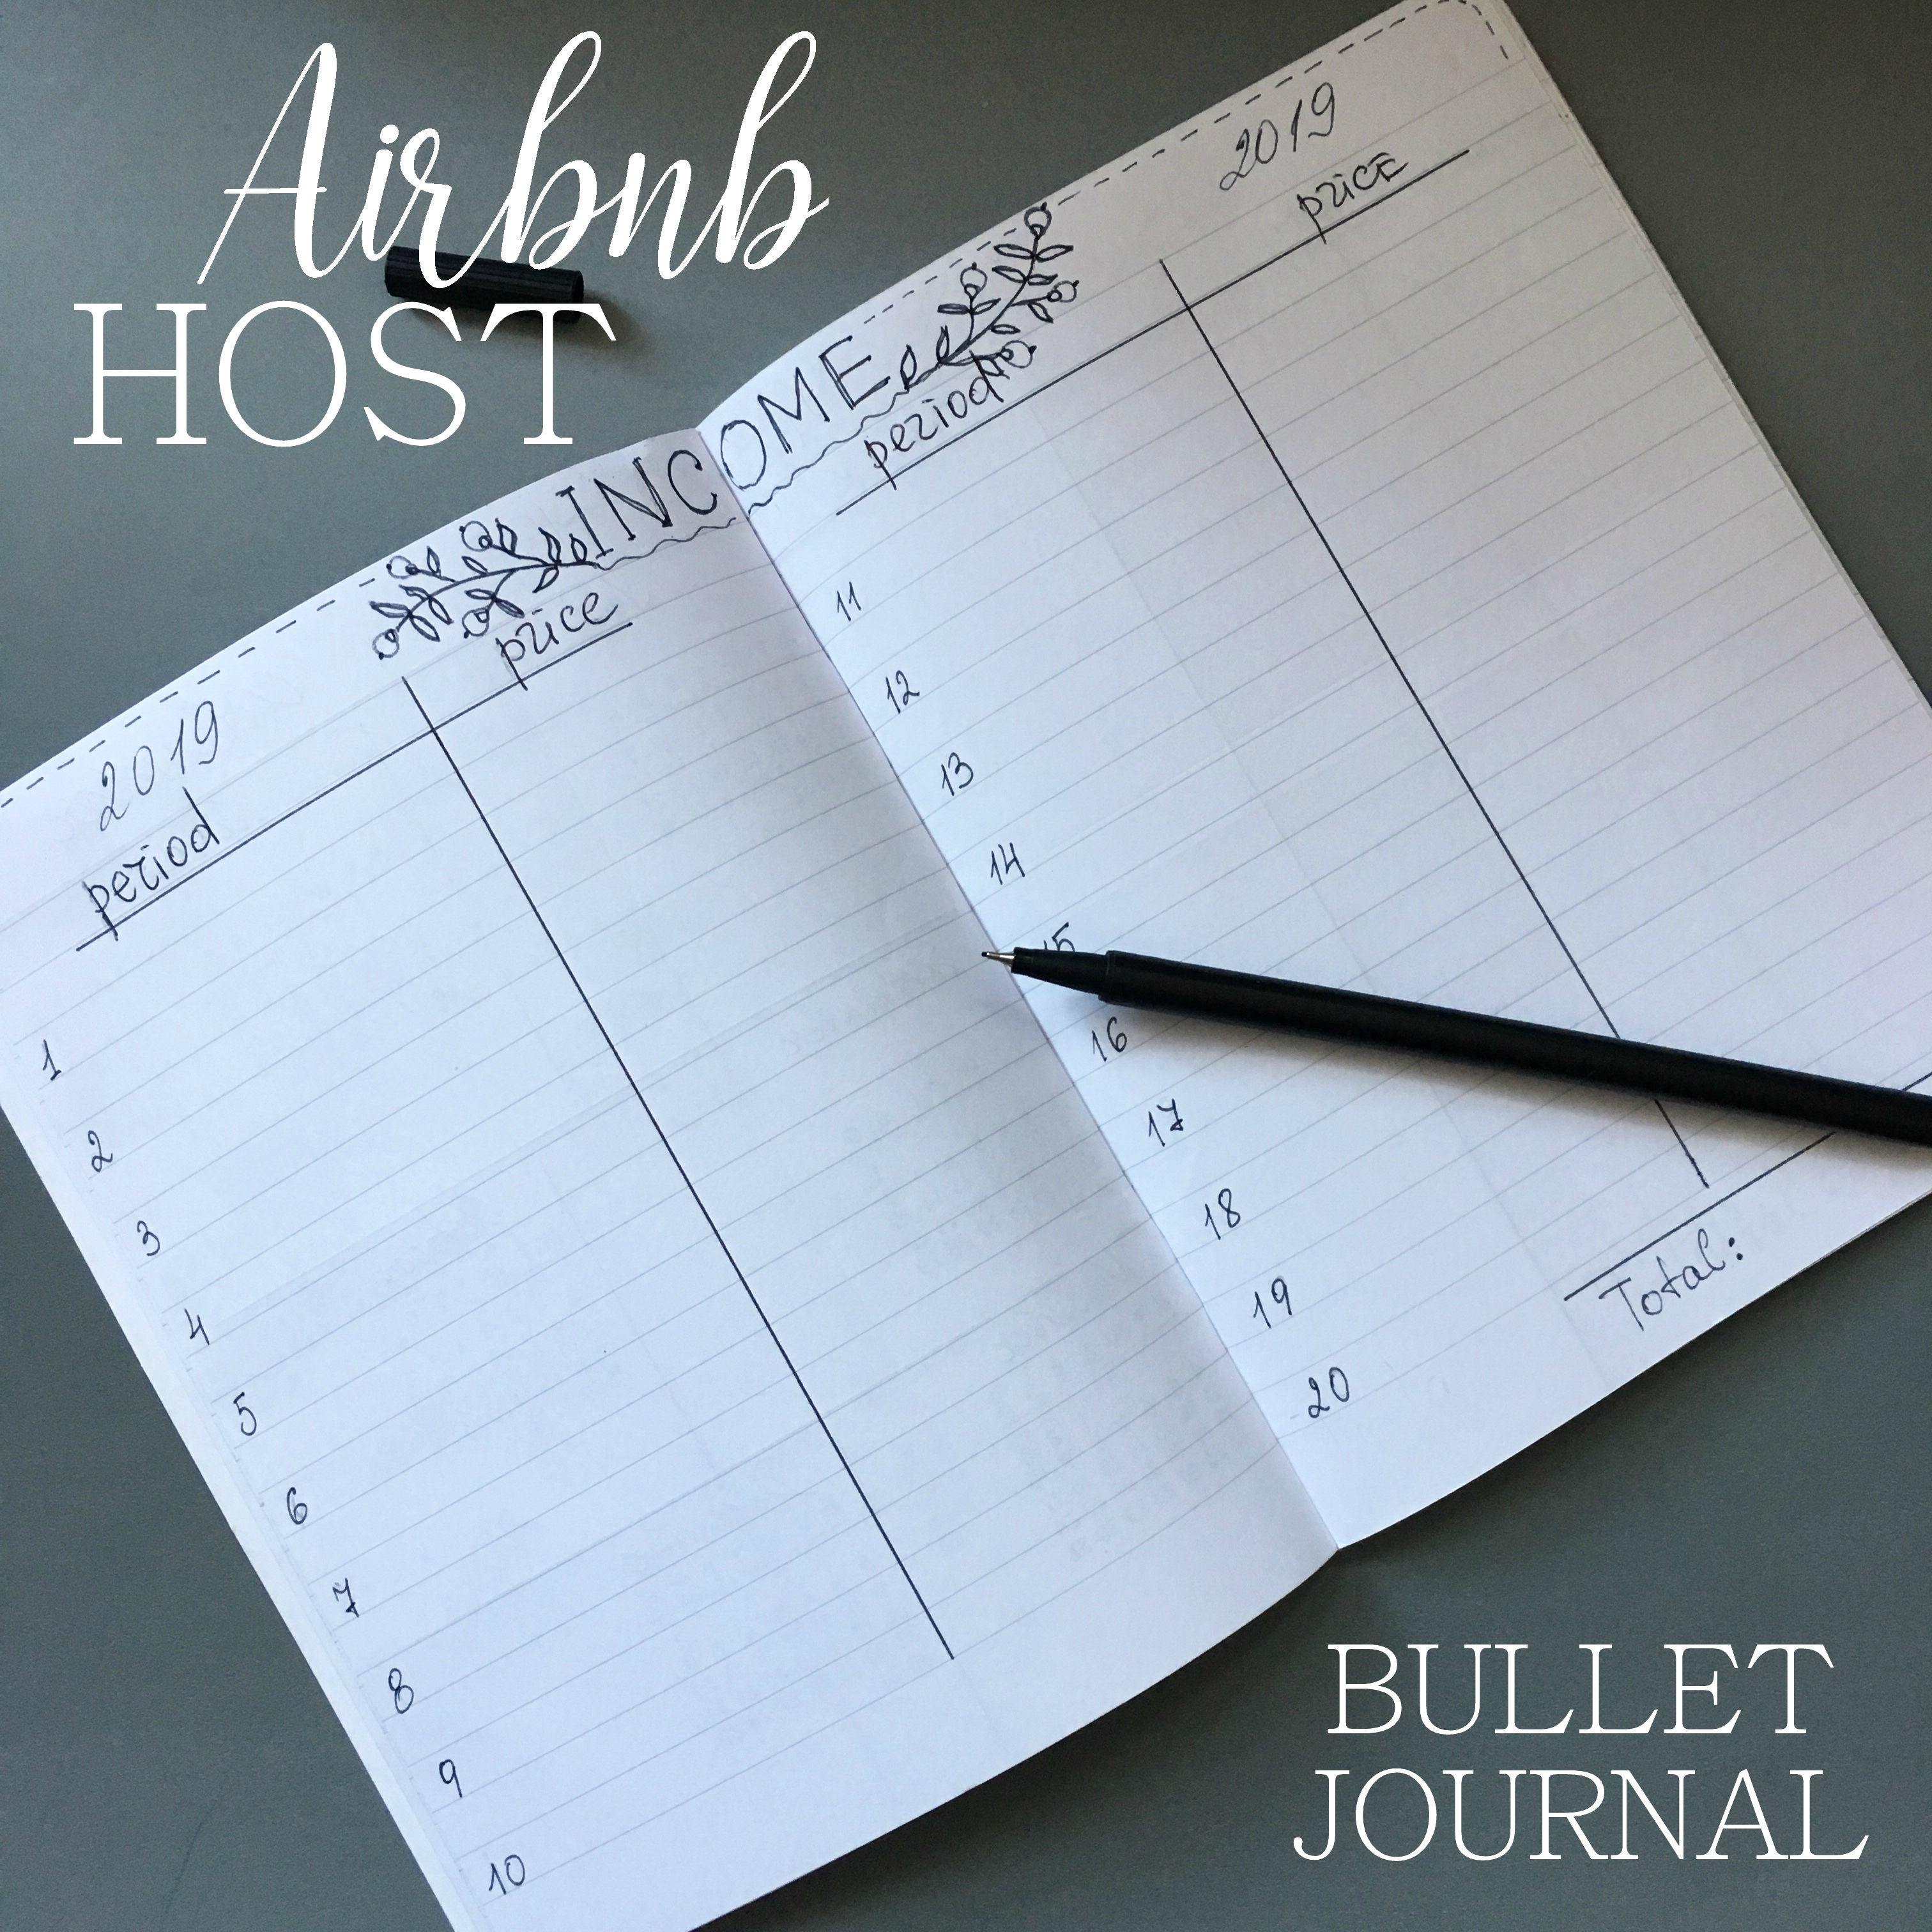 page of a Airbnb host bullet journal - Income - black ink on white pages